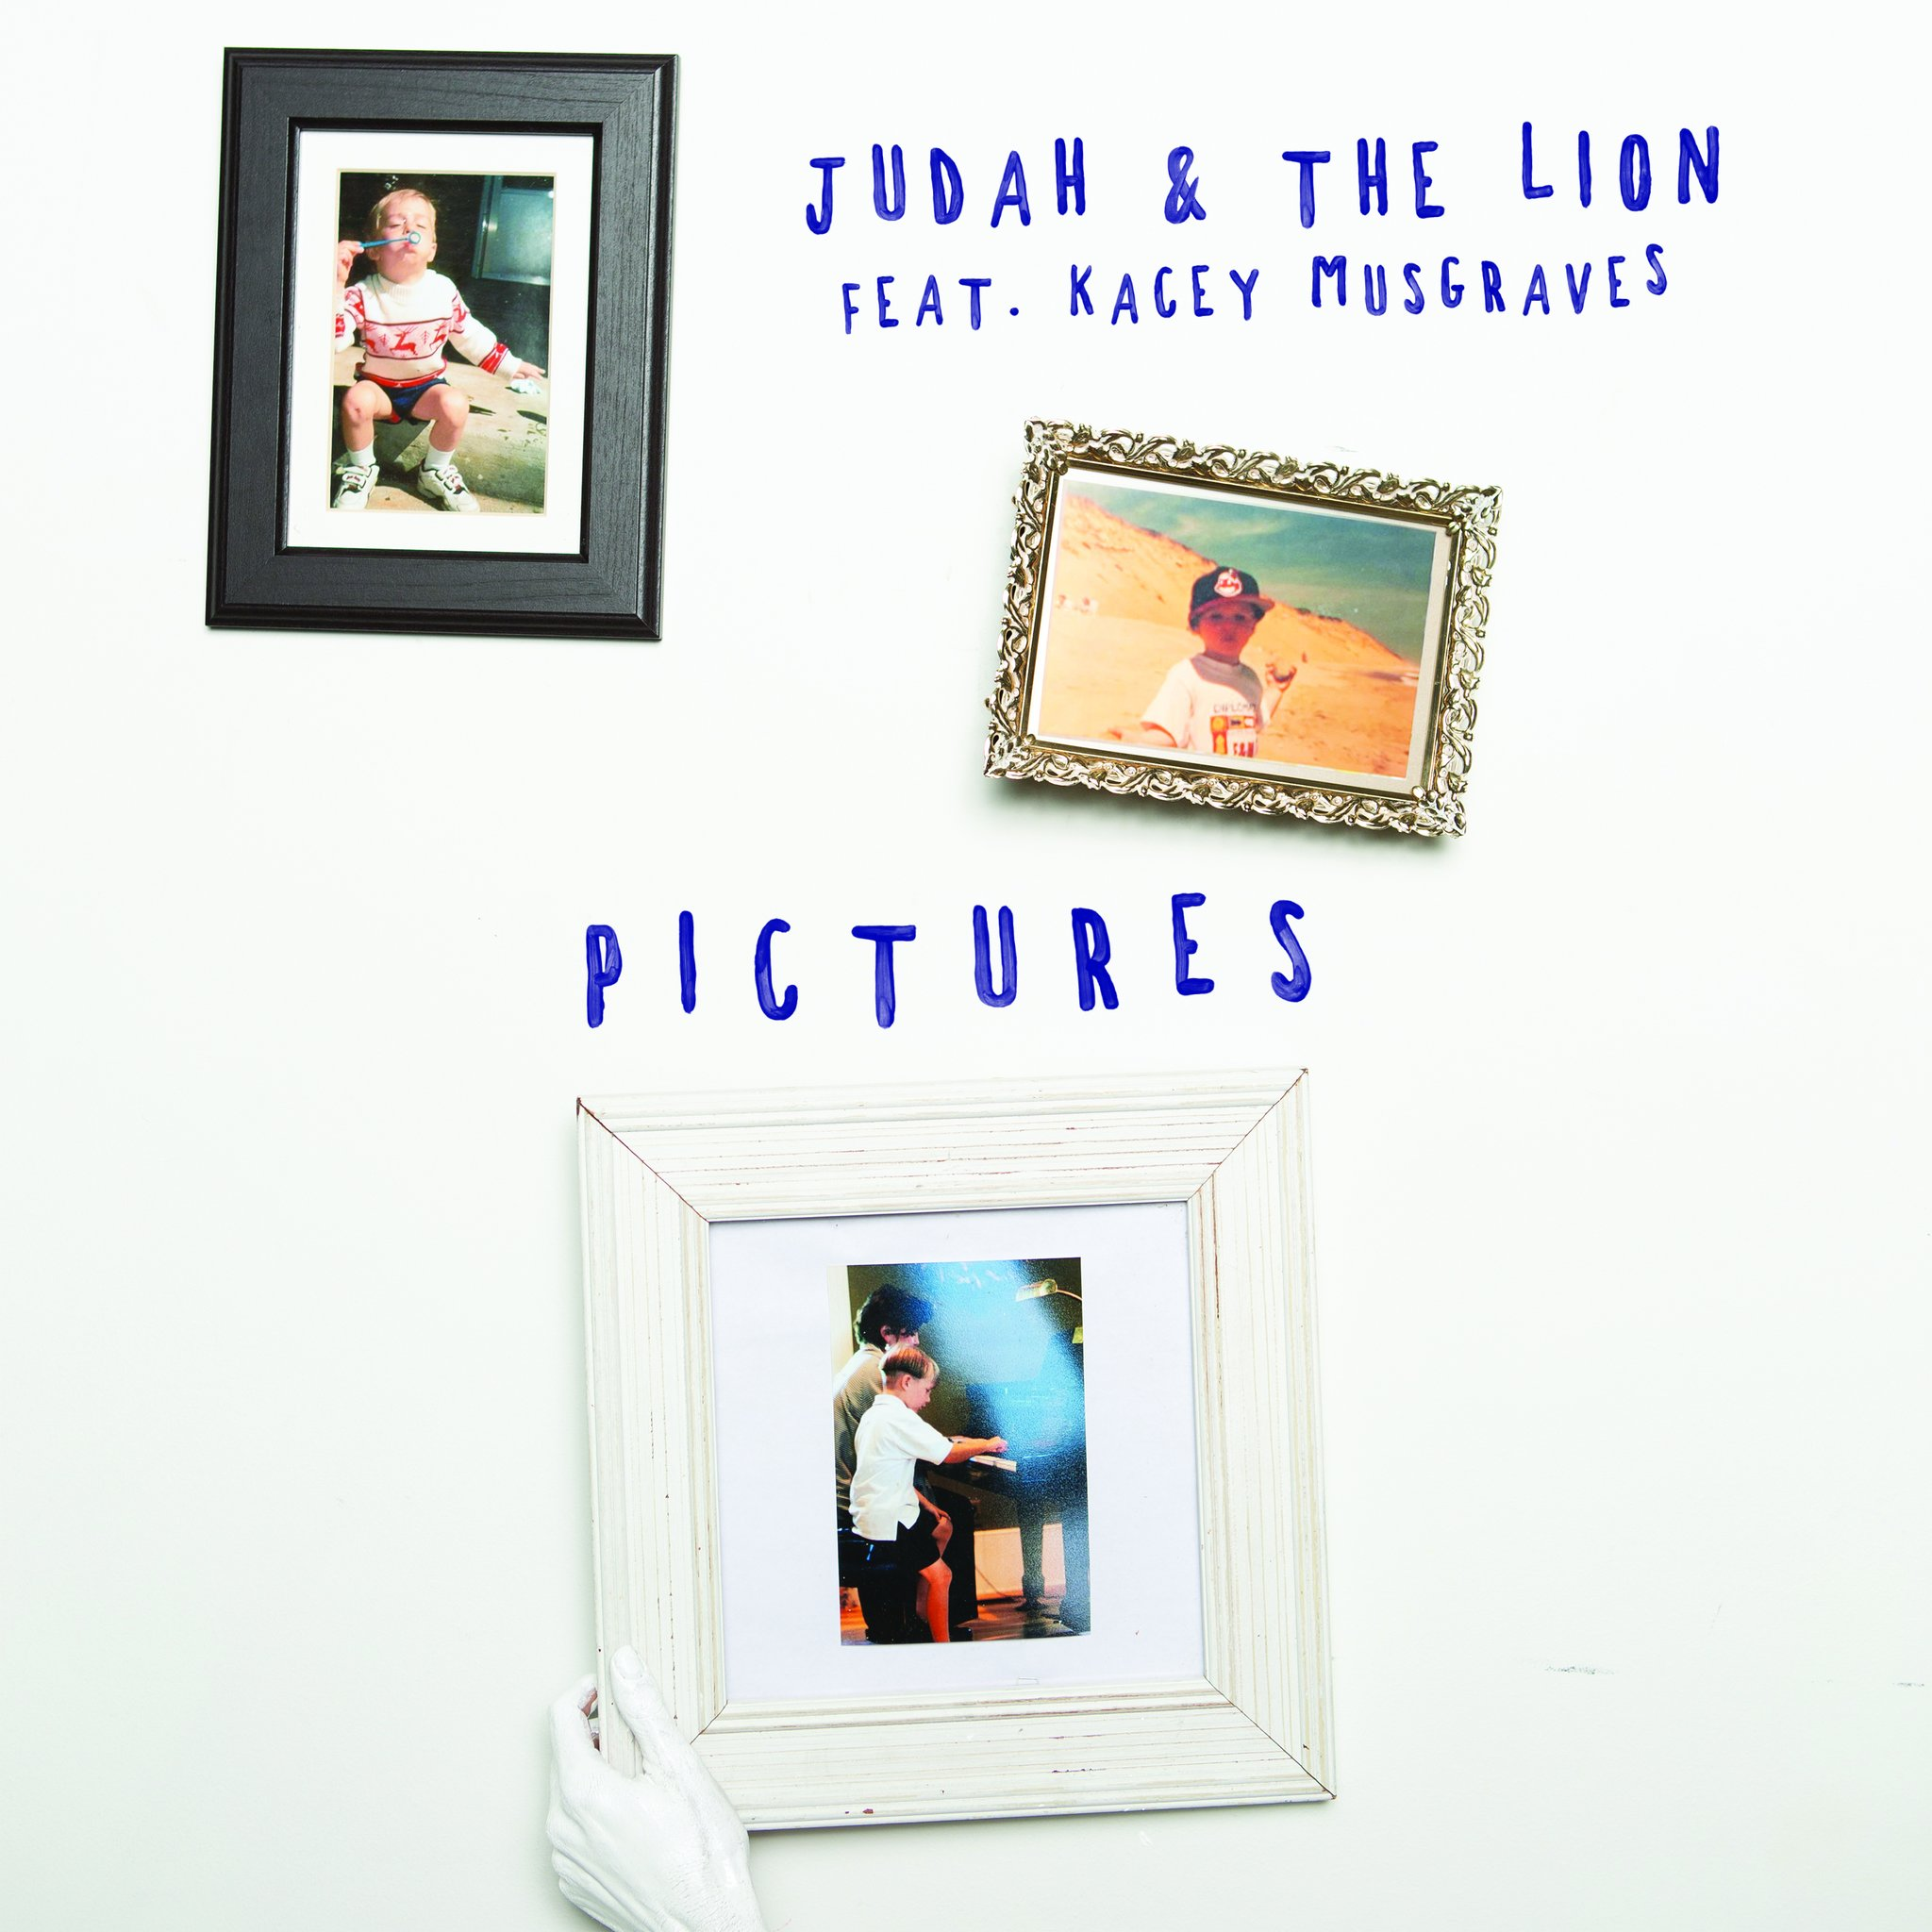 Judah & The Lion Kacey Musgraves Pictures single artwork